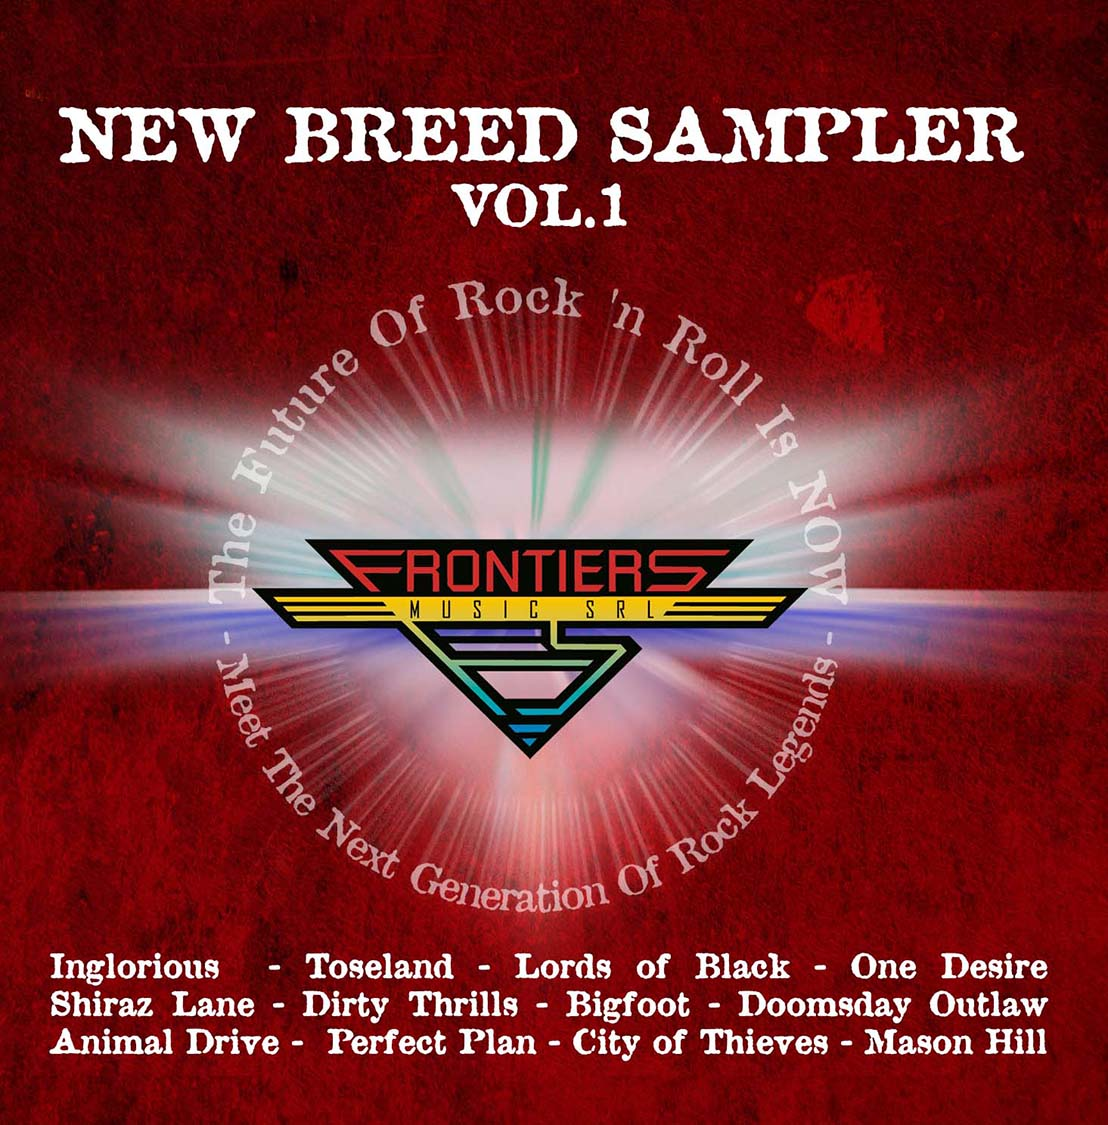 Noticias Express - Página 9 New_breed_sampler